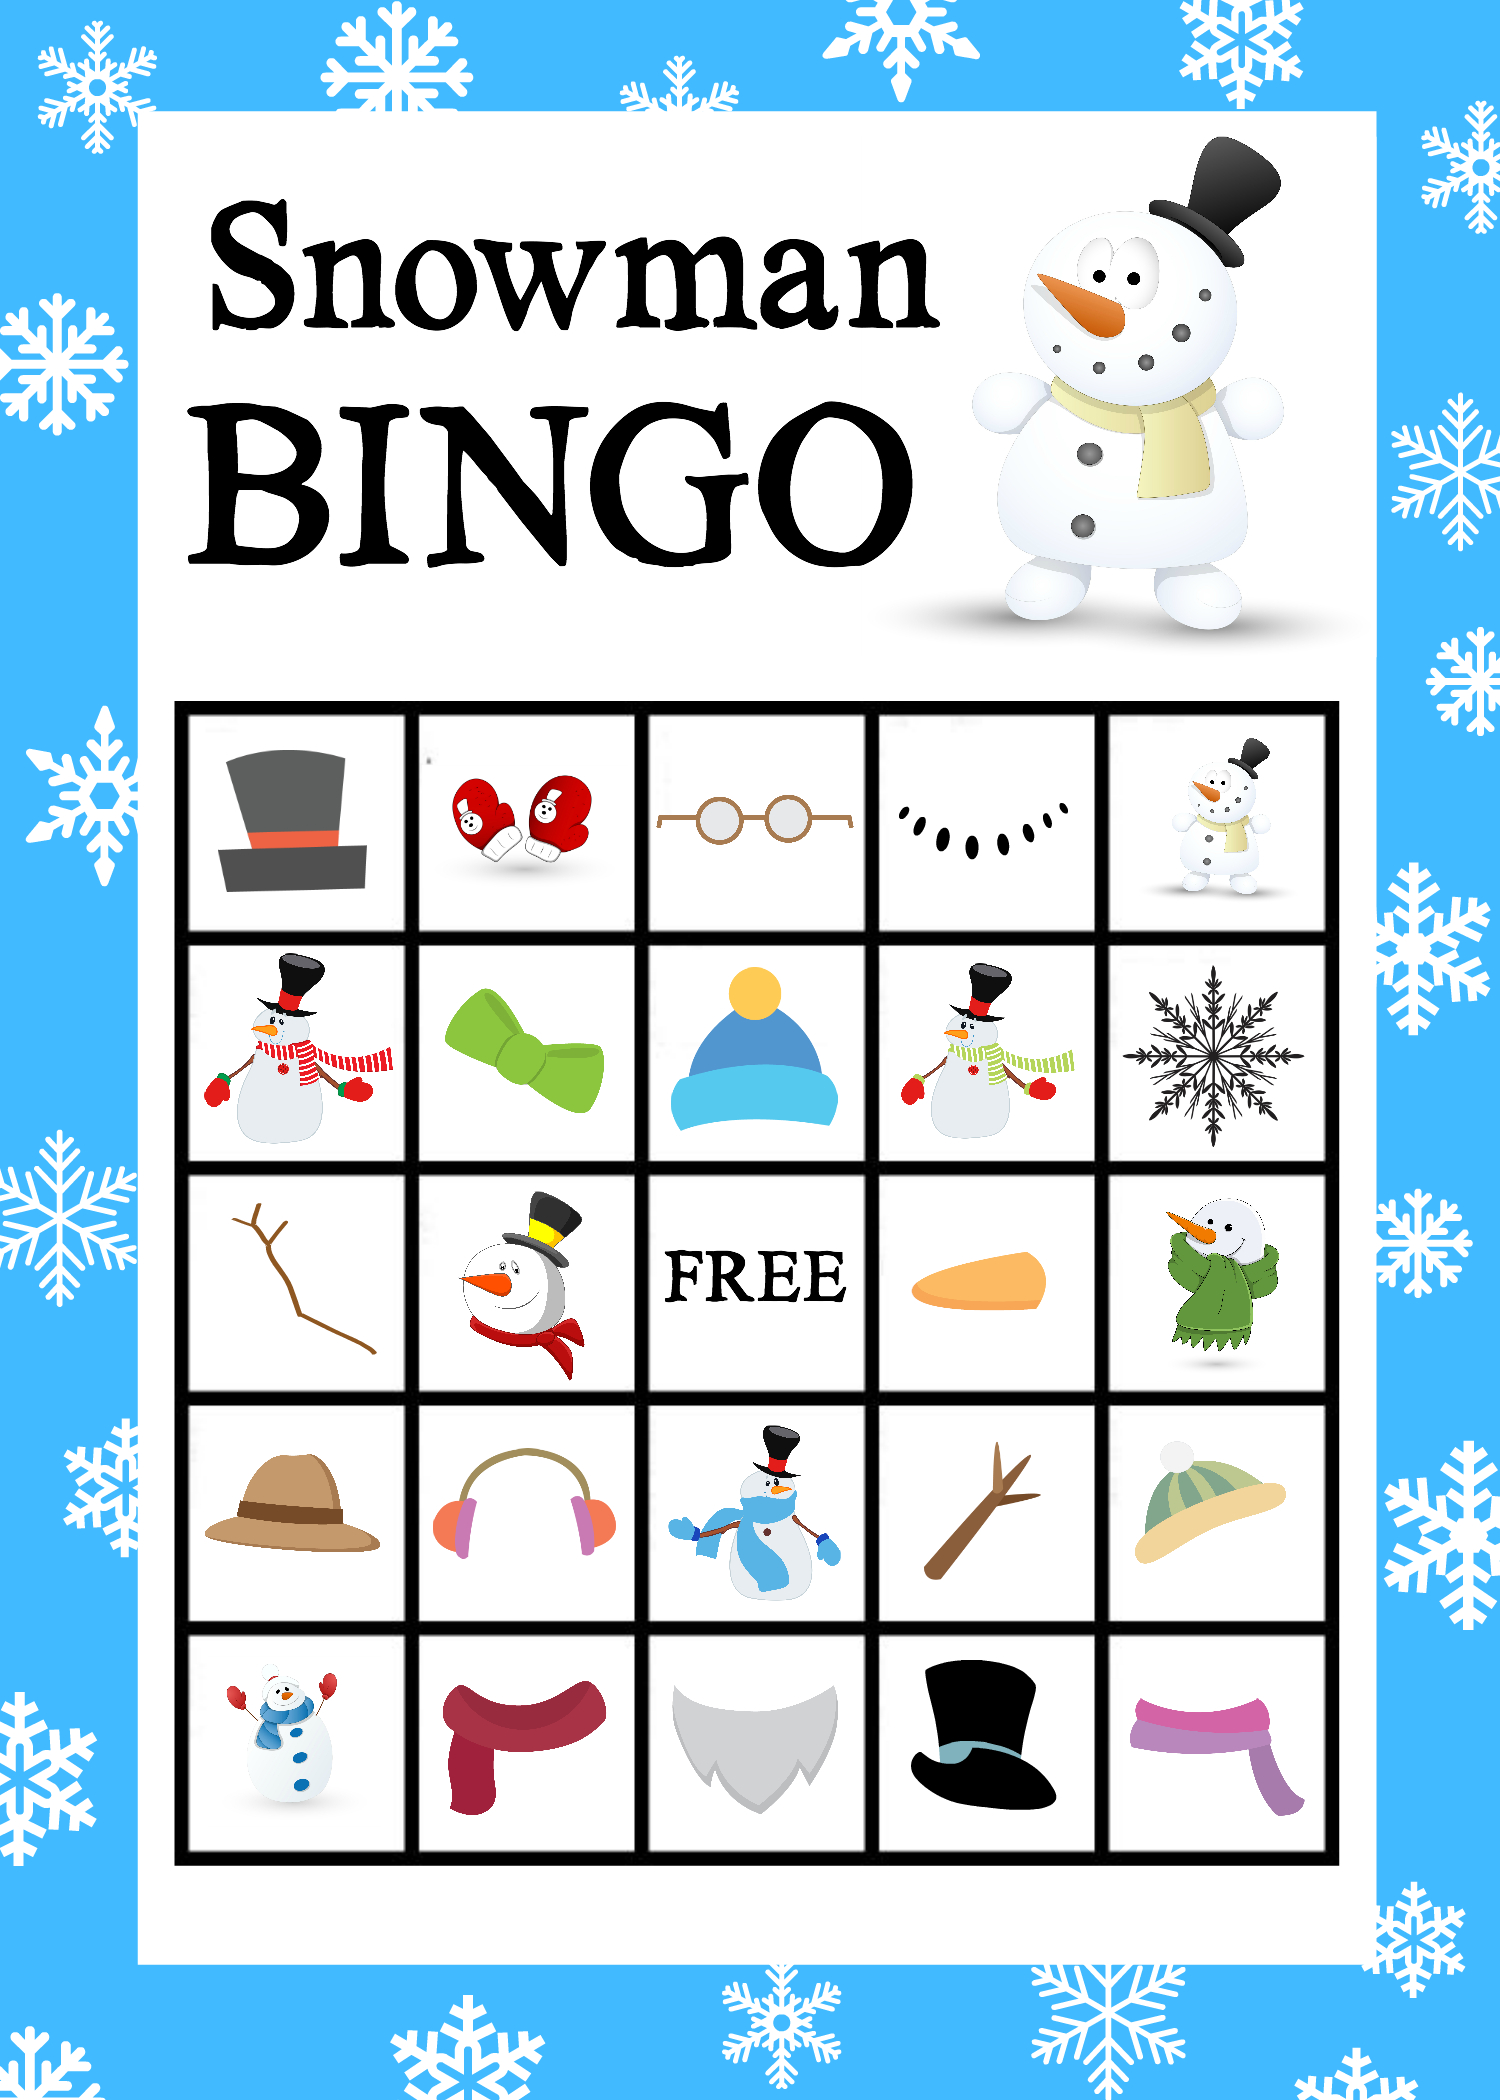 Printable Snowman Bingo Game - Crazy Little Projects - Free Printable Bingo Games